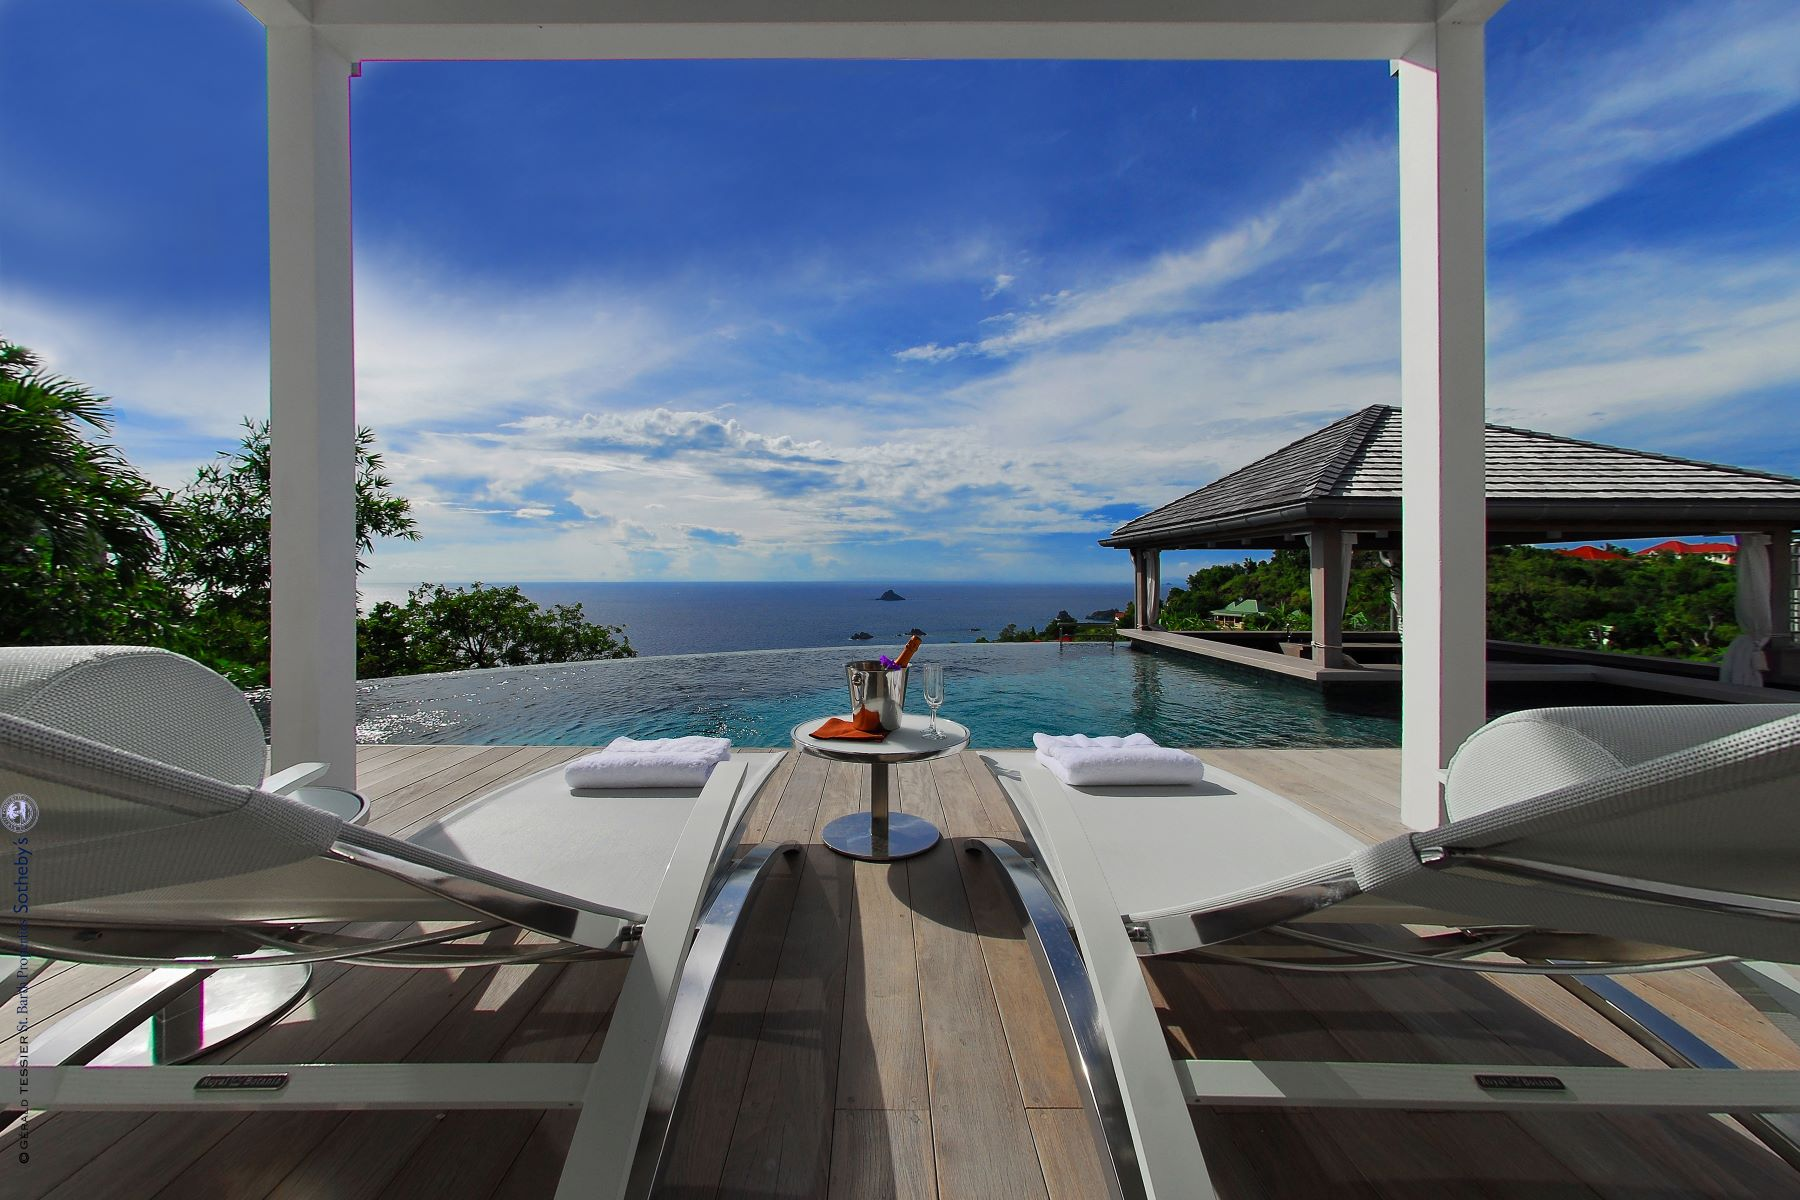 Single Family Homes for Sale at Villa Fleur de Cactus Lurin Other St. Barthelemy, Cities In St. Barthelemy 97133 St. Barthelemy